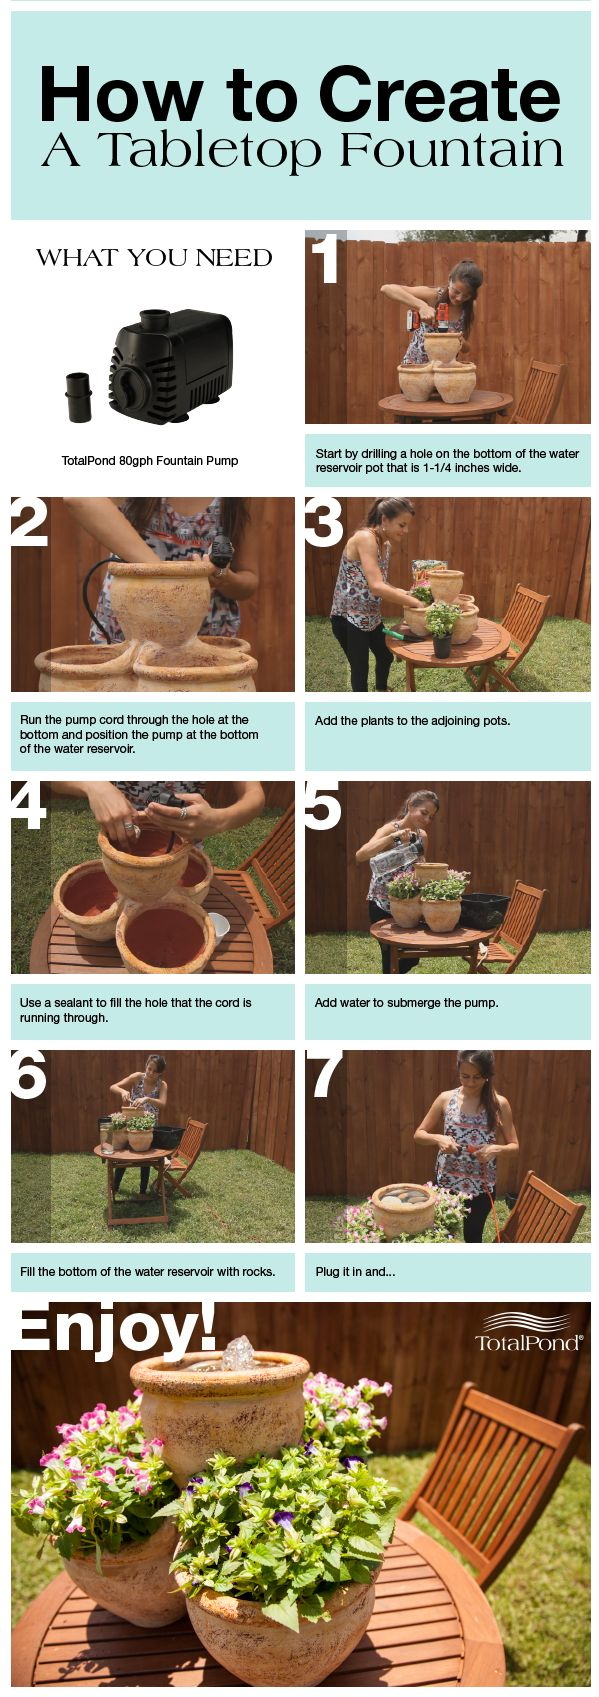 Add some charm to your space with a tabletop fountain! For this project, we converted a rustic planter into a dazzling water feature with plants and flowers. #diy #fountain #TotalPond #howto